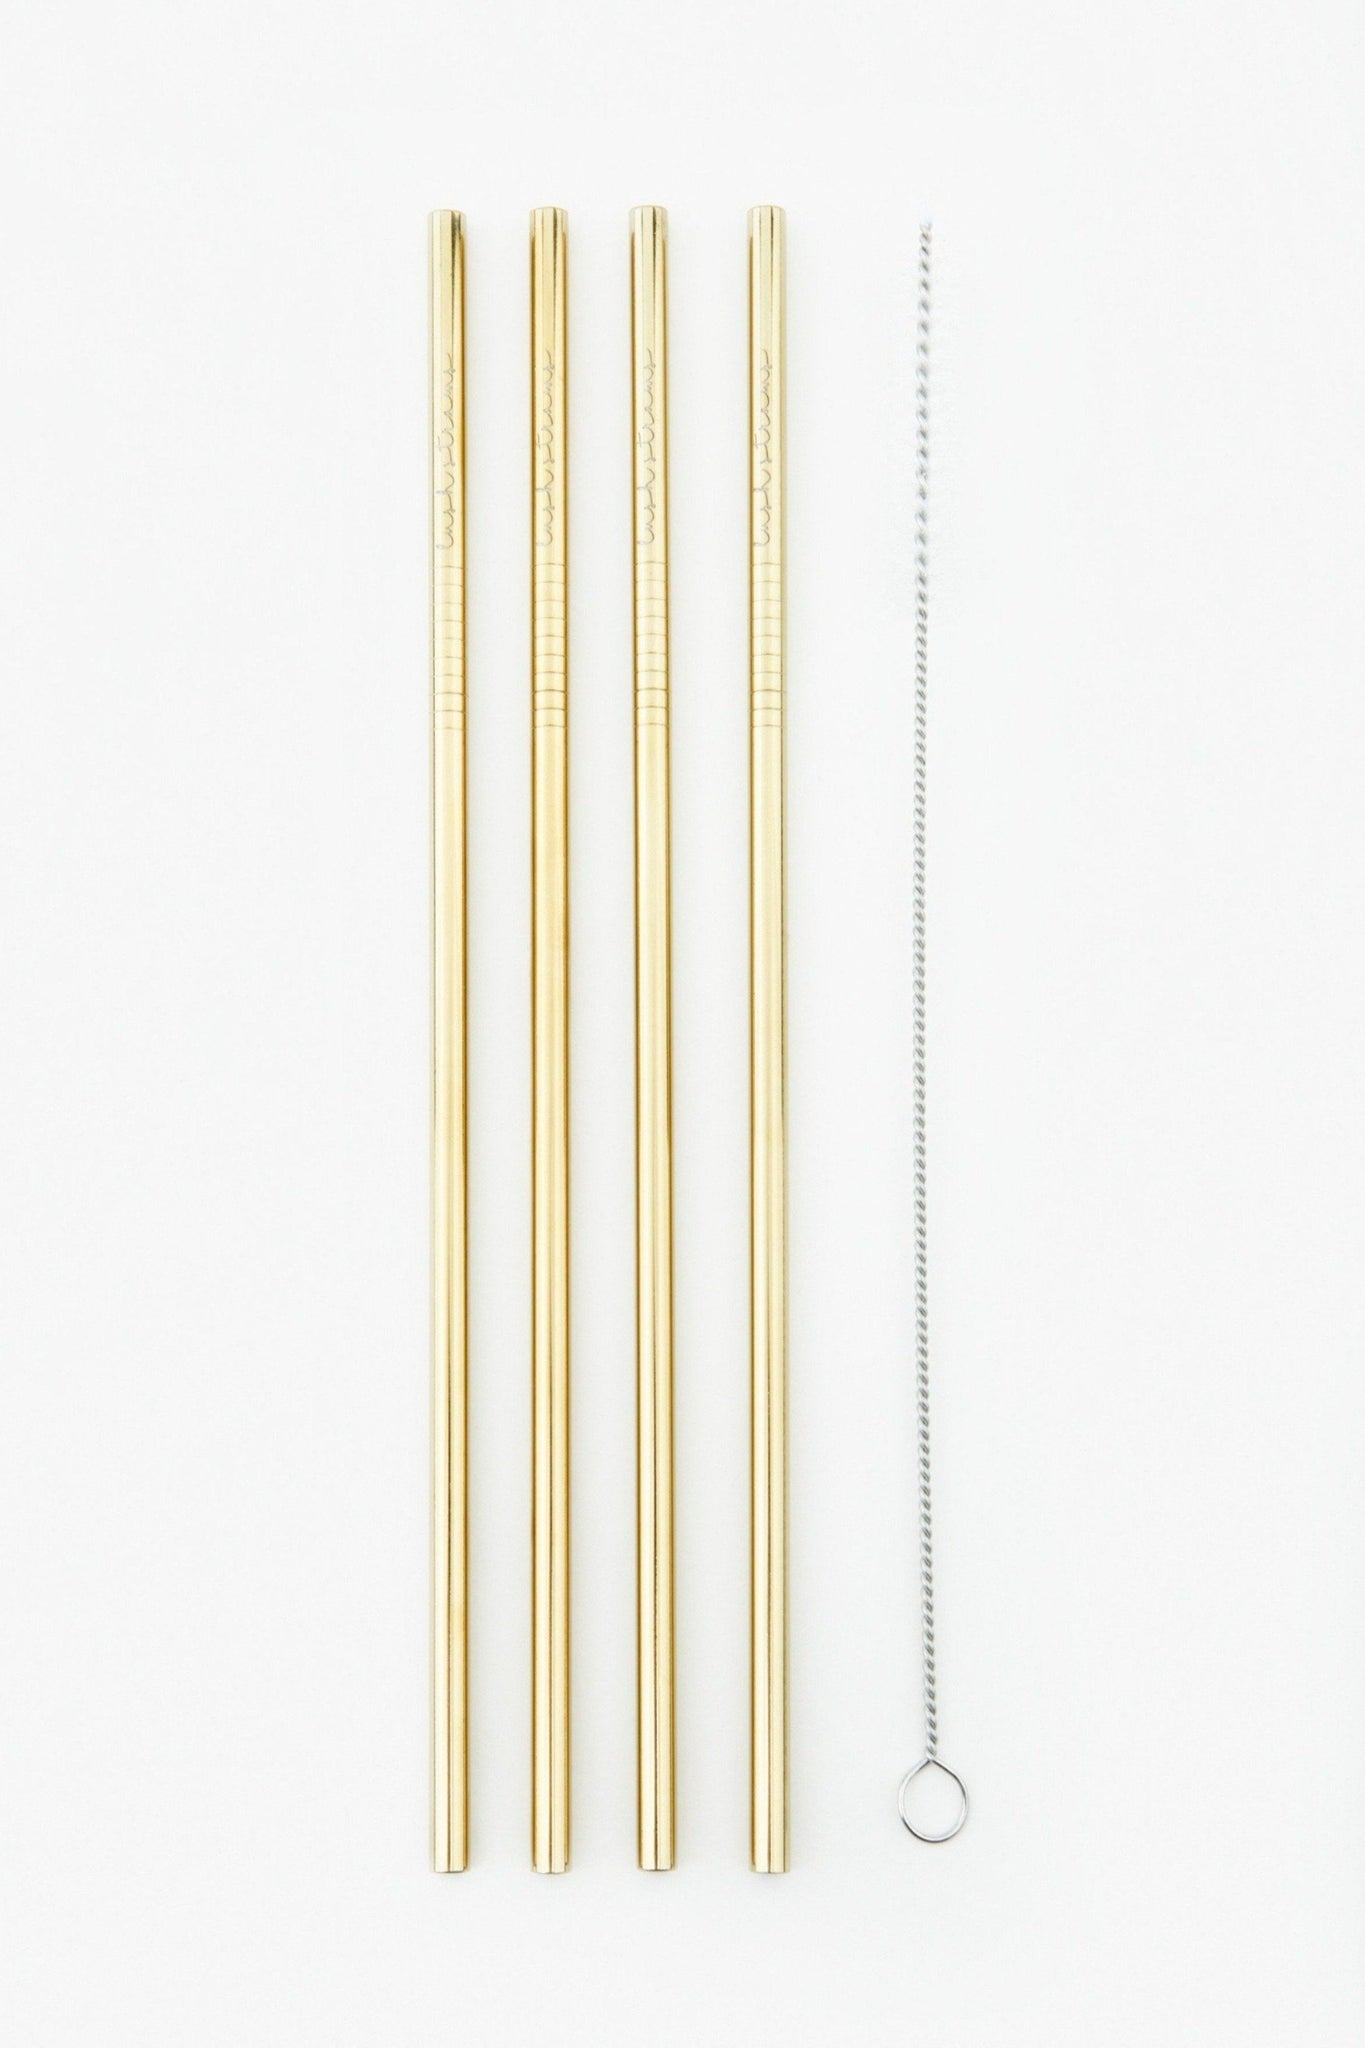 metal reusable straws metal reusable straws tumbler long straw straw gold straw shiny straw fun straw alcoholic beverage straw designer straw  lush straw party favor party straw eco friendly entertainment straw entertaining straw paper straw alternative gifts cute straws cute cocktail straws cocktail metal straws  fun straws holiday party favor holiday straws  Black straws saints straws black and gold party favors black and gold straws